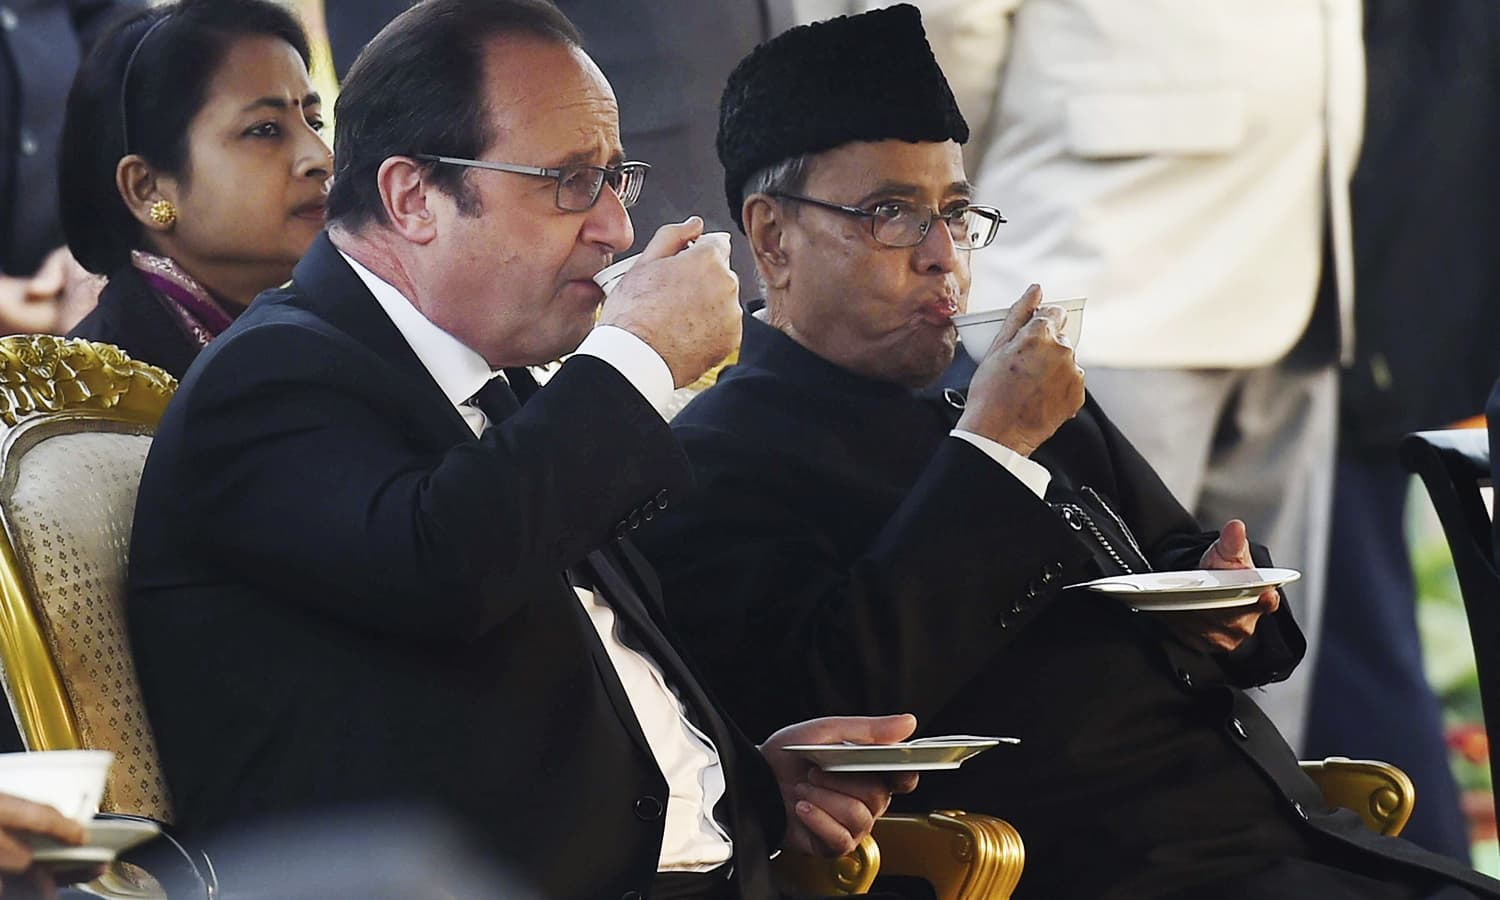 French President Francois Hollande (L) and Indian President Pranab Mukherjee (R) sip refreshments at a reception hosted by the Indian President to mark India's Republic Day. ─ AP